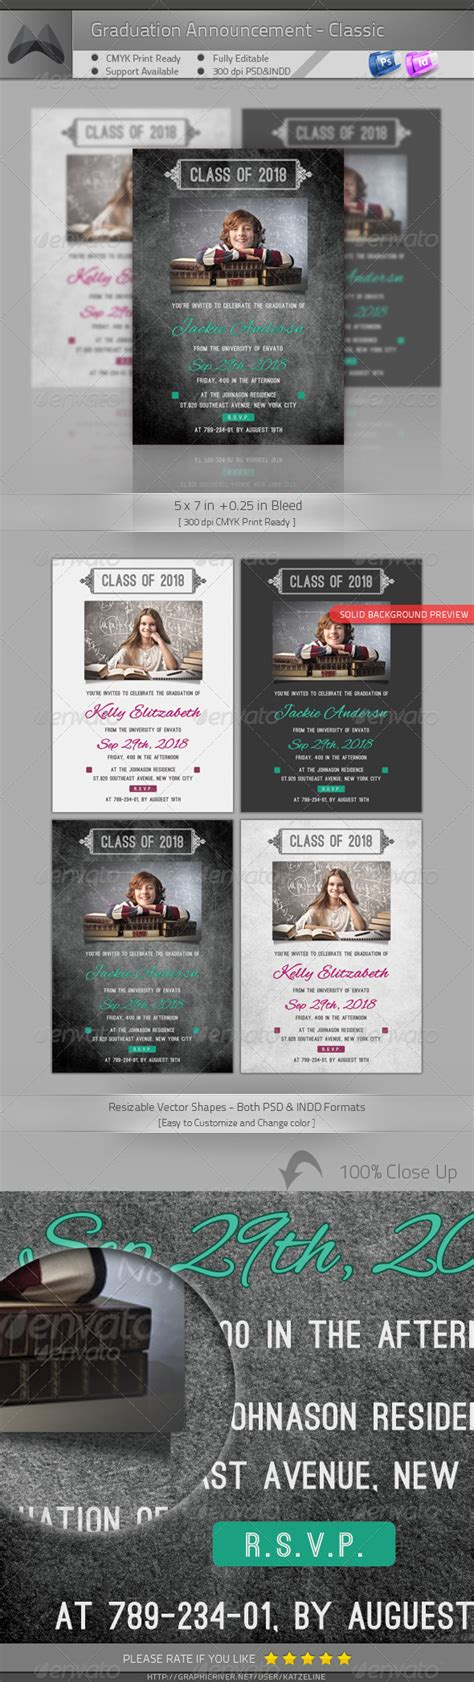 graduation card indesign template graduation invitations indesign templates free